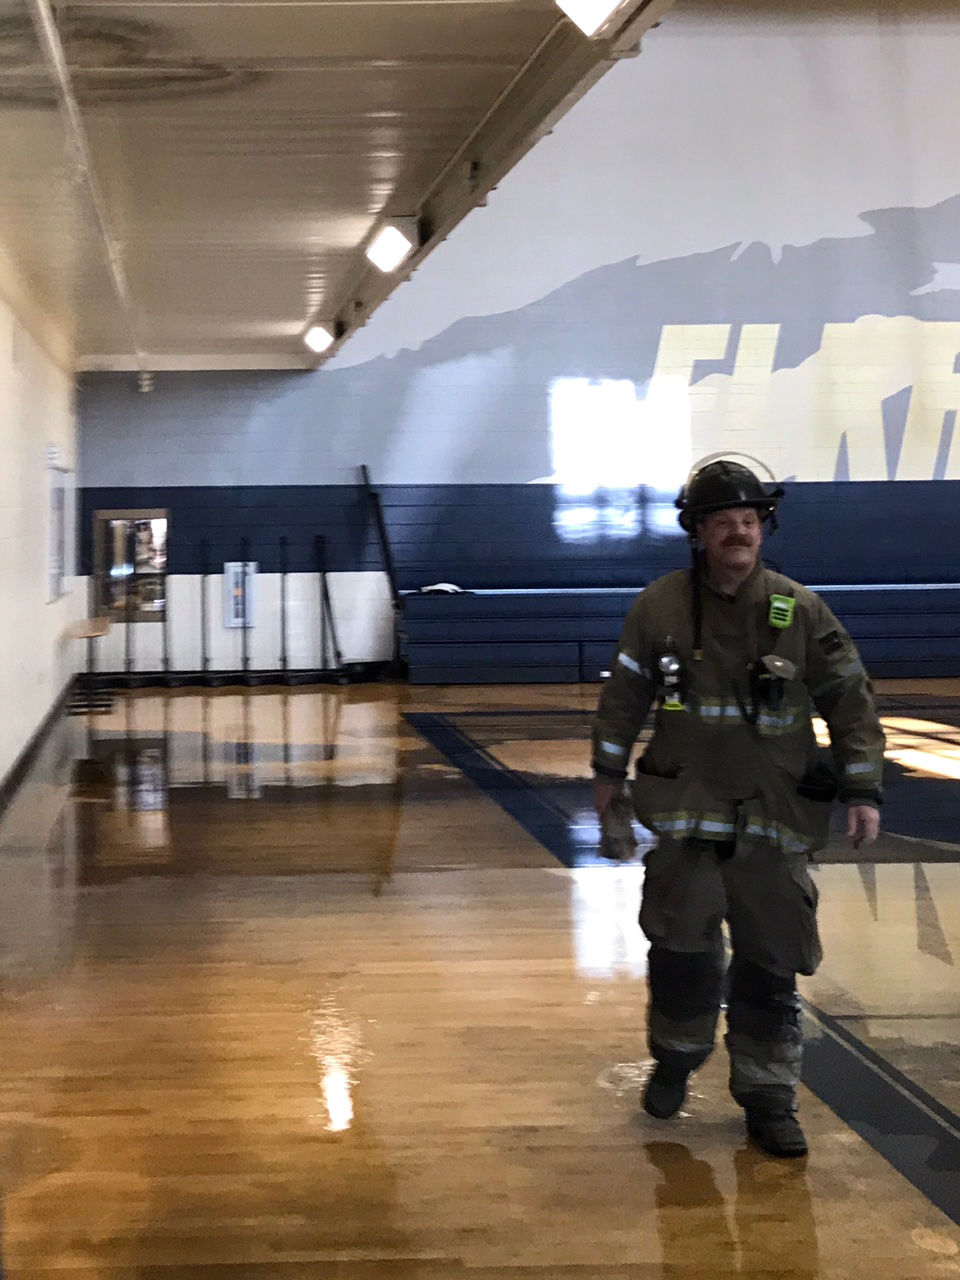 Thousands of gallons of water pour into Elkhorn South gym after wayward basketball shot snaps sprinkler